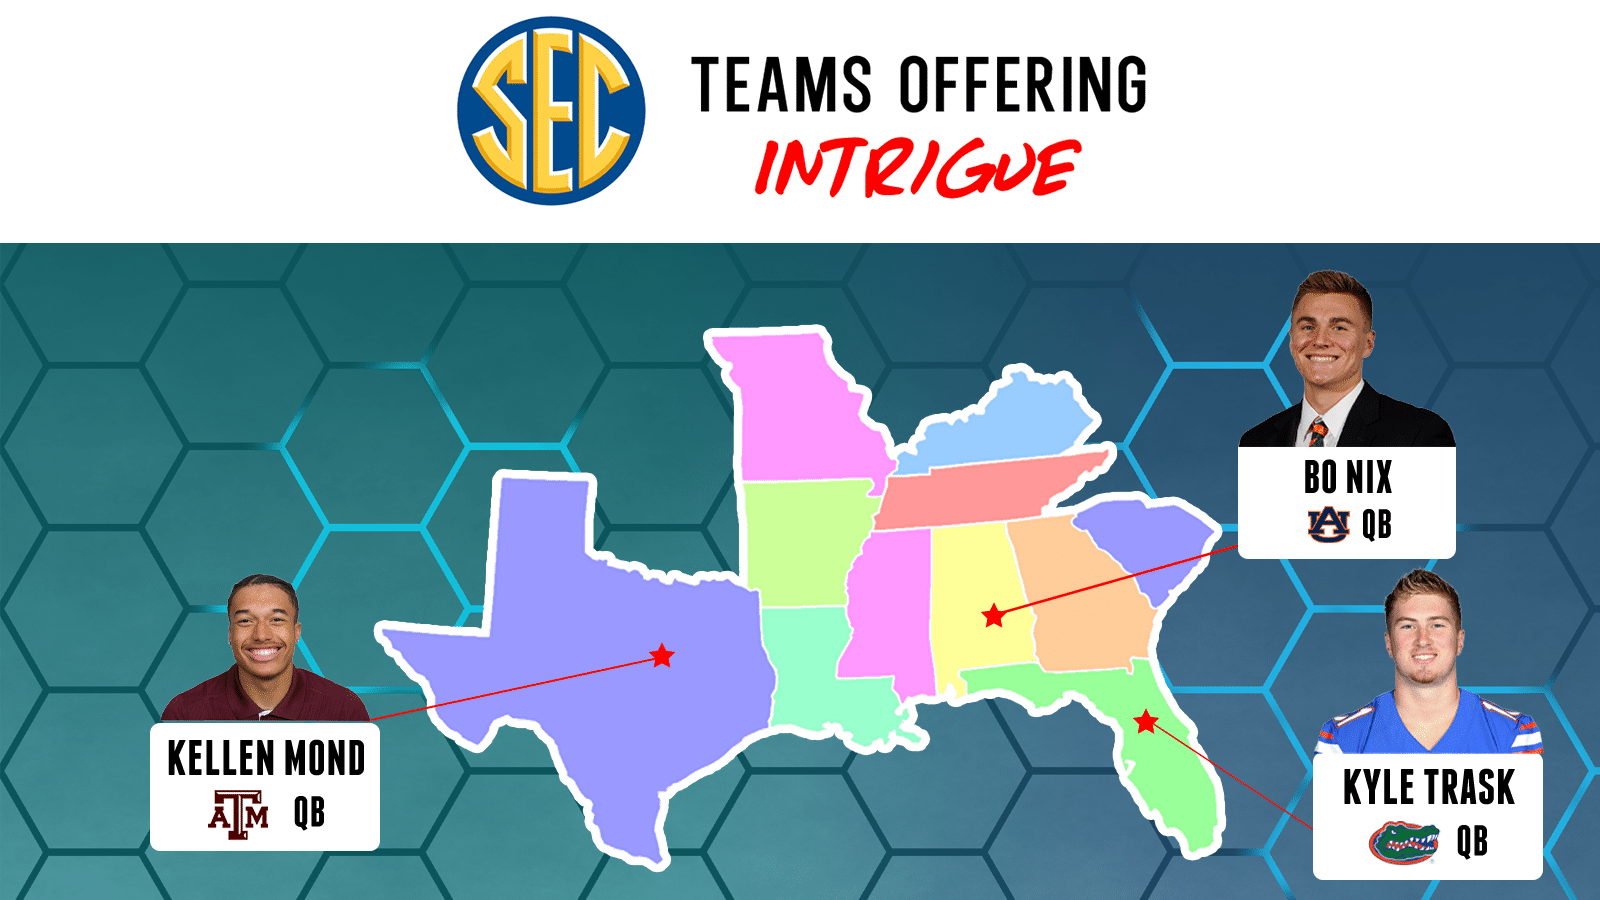 SEC Teams Offering Intrigue in 2020